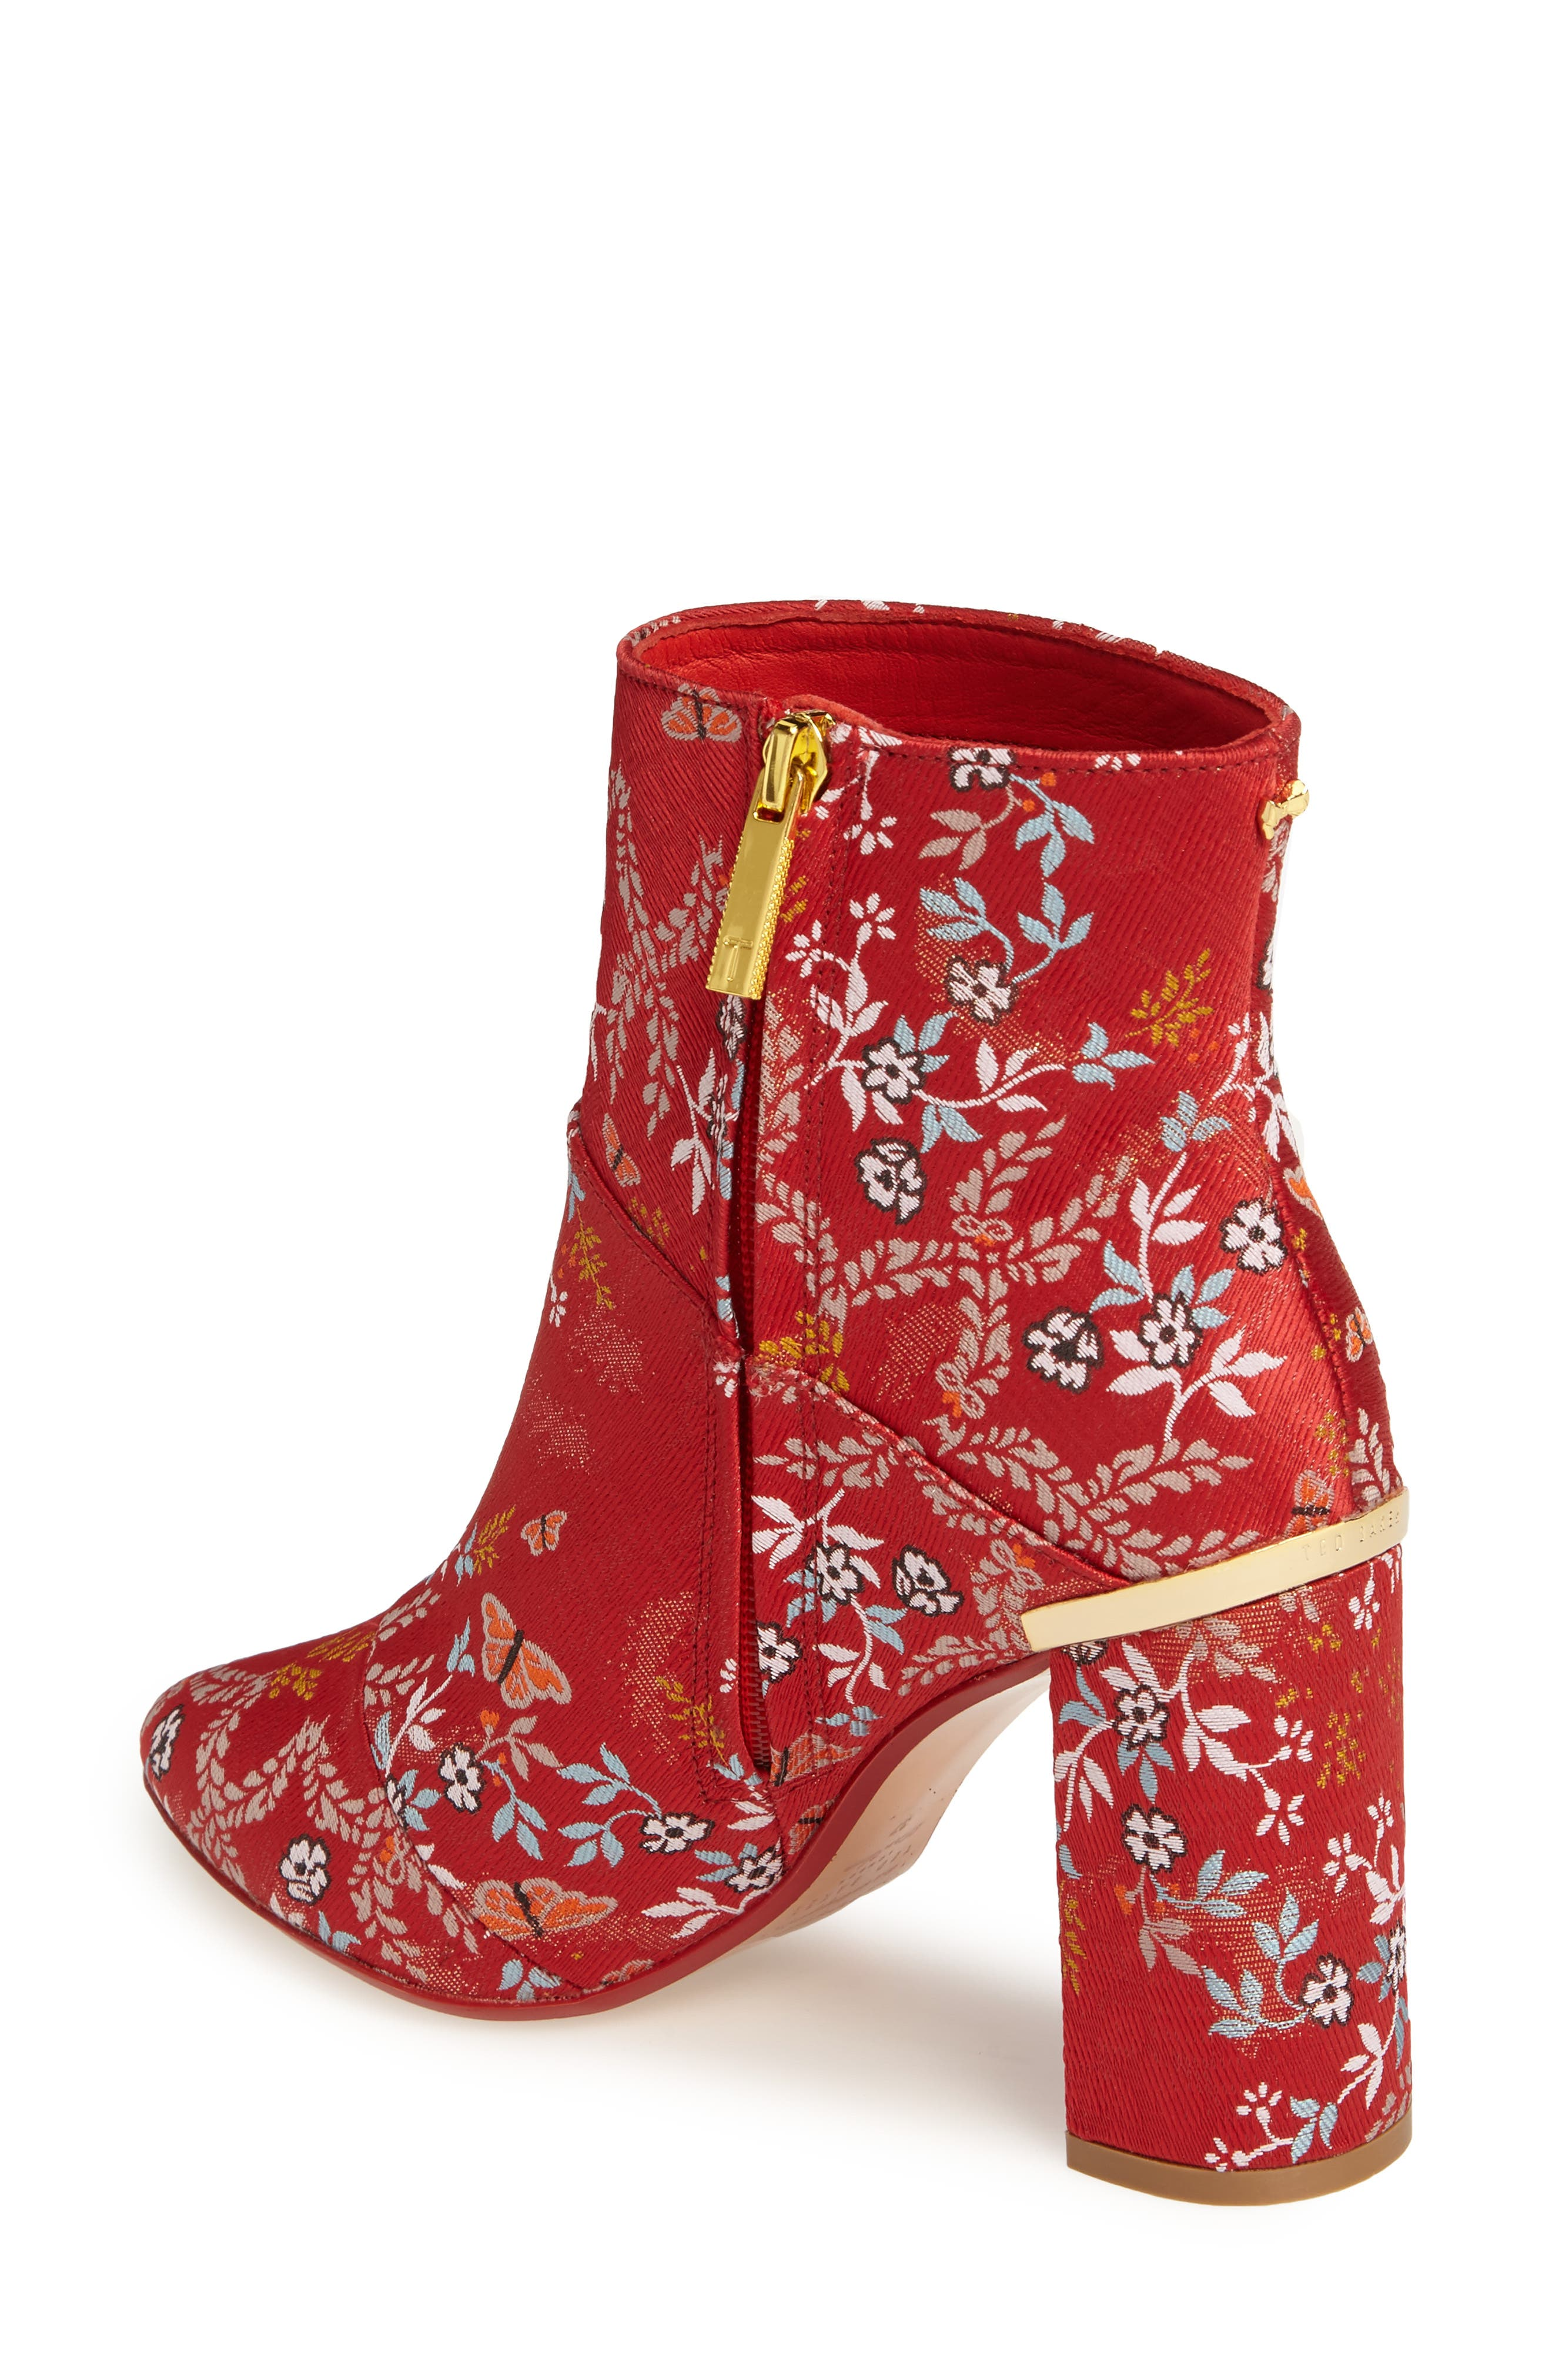 Ishbel Brocade Bootie,                             Alternate thumbnail 2, color,                             Red Kyoto Print